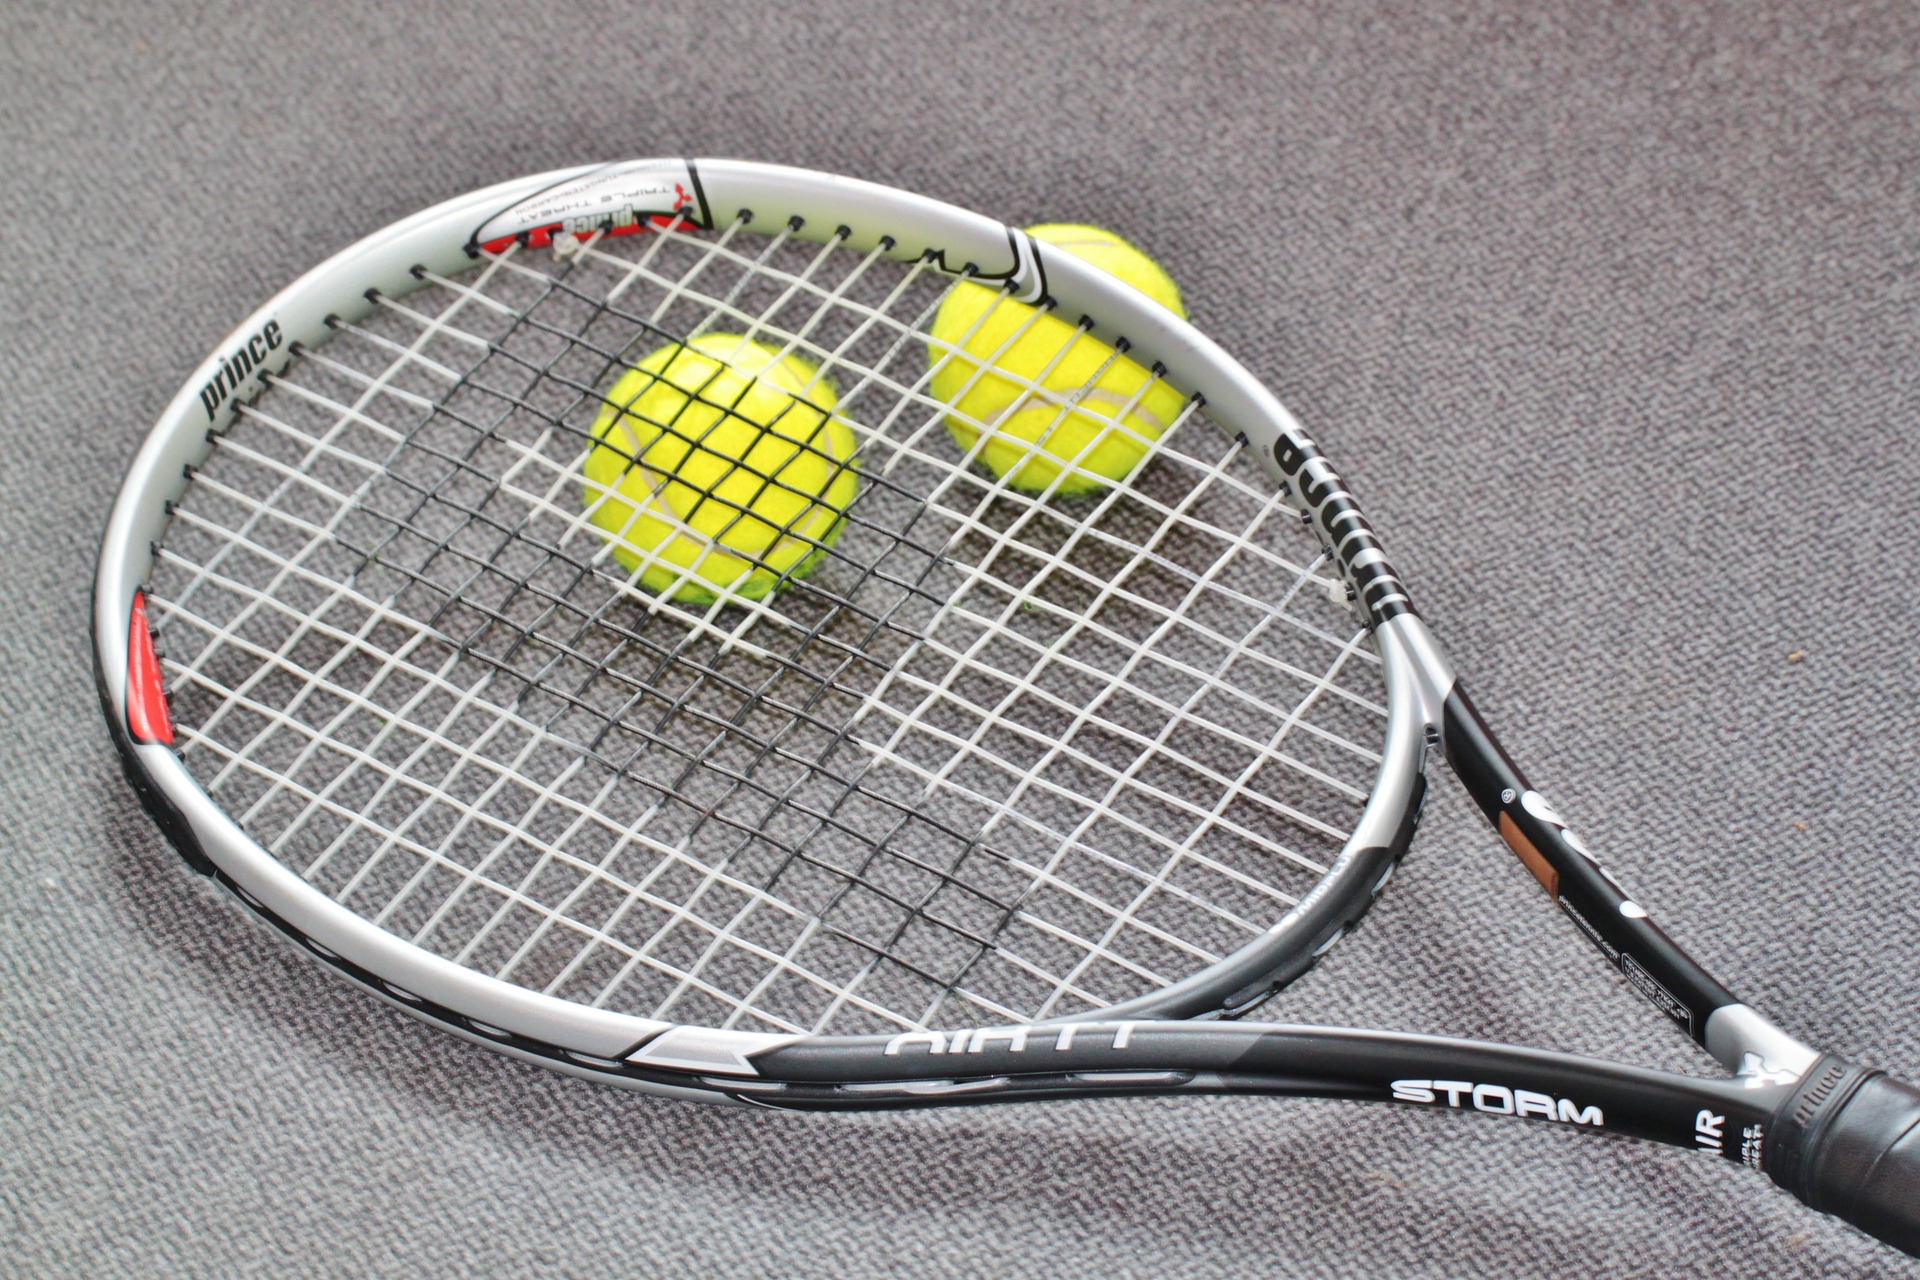 Racket, Ball, Game, Object, Sport, HQ Photo